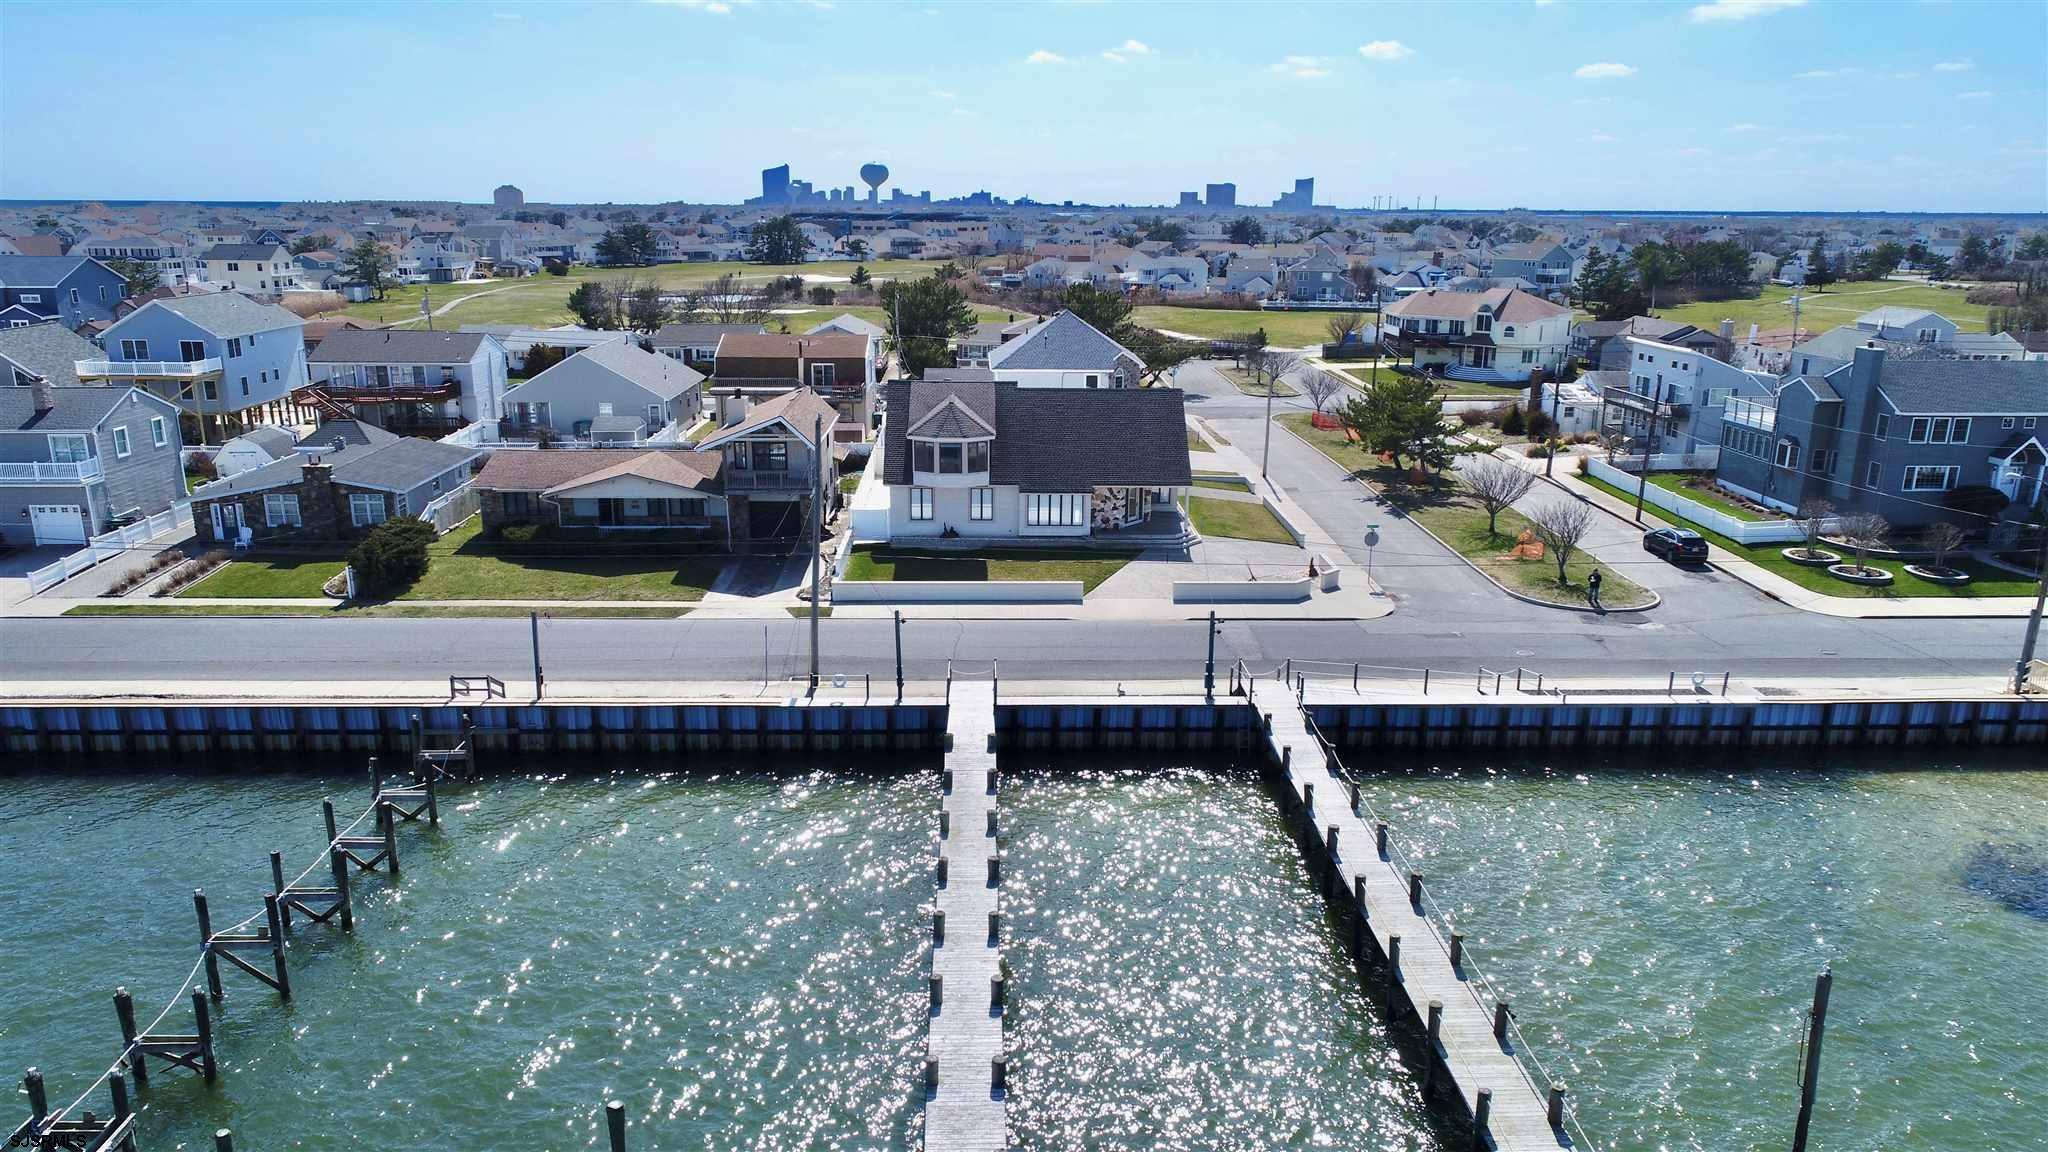 You CAN have it all!! Boater & beach lover? No problem! Dock with 4 boat slips & walking distance to